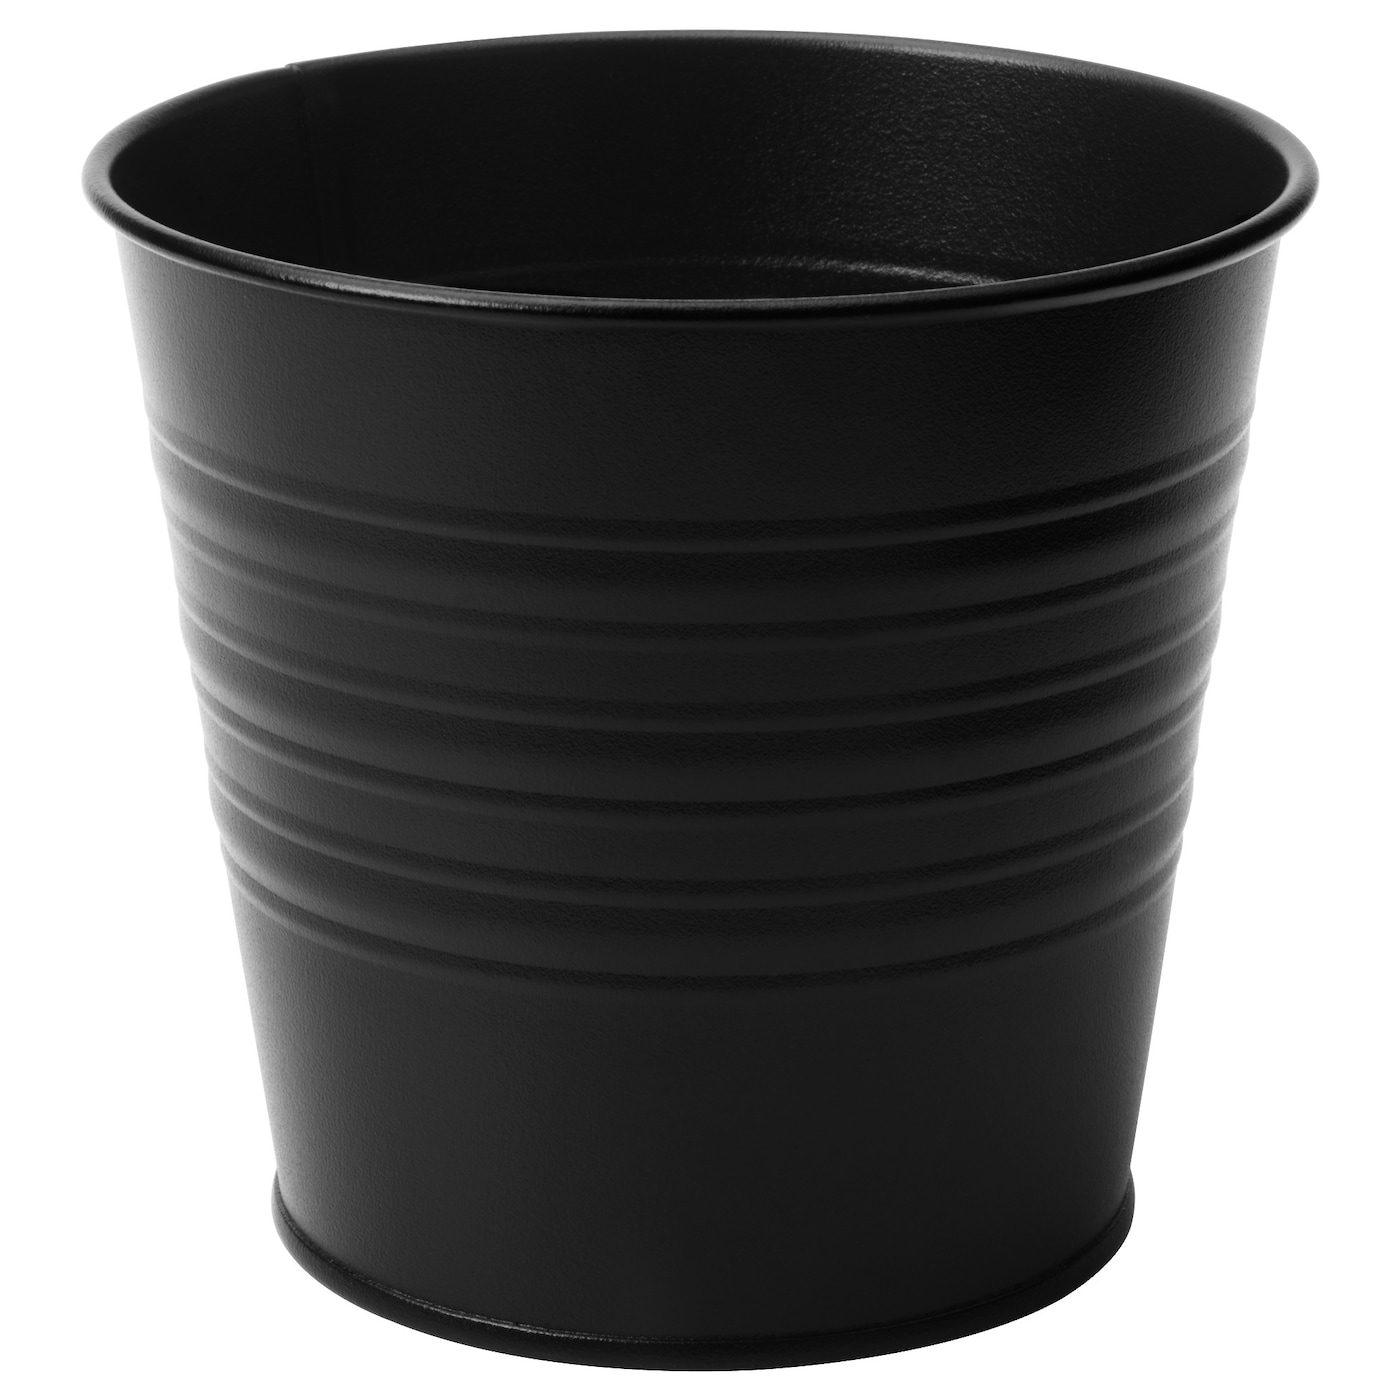 socker cache pot int rieur ext rieur noir 32 cm ikea. Black Bedroom Furniture Sets. Home Design Ideas